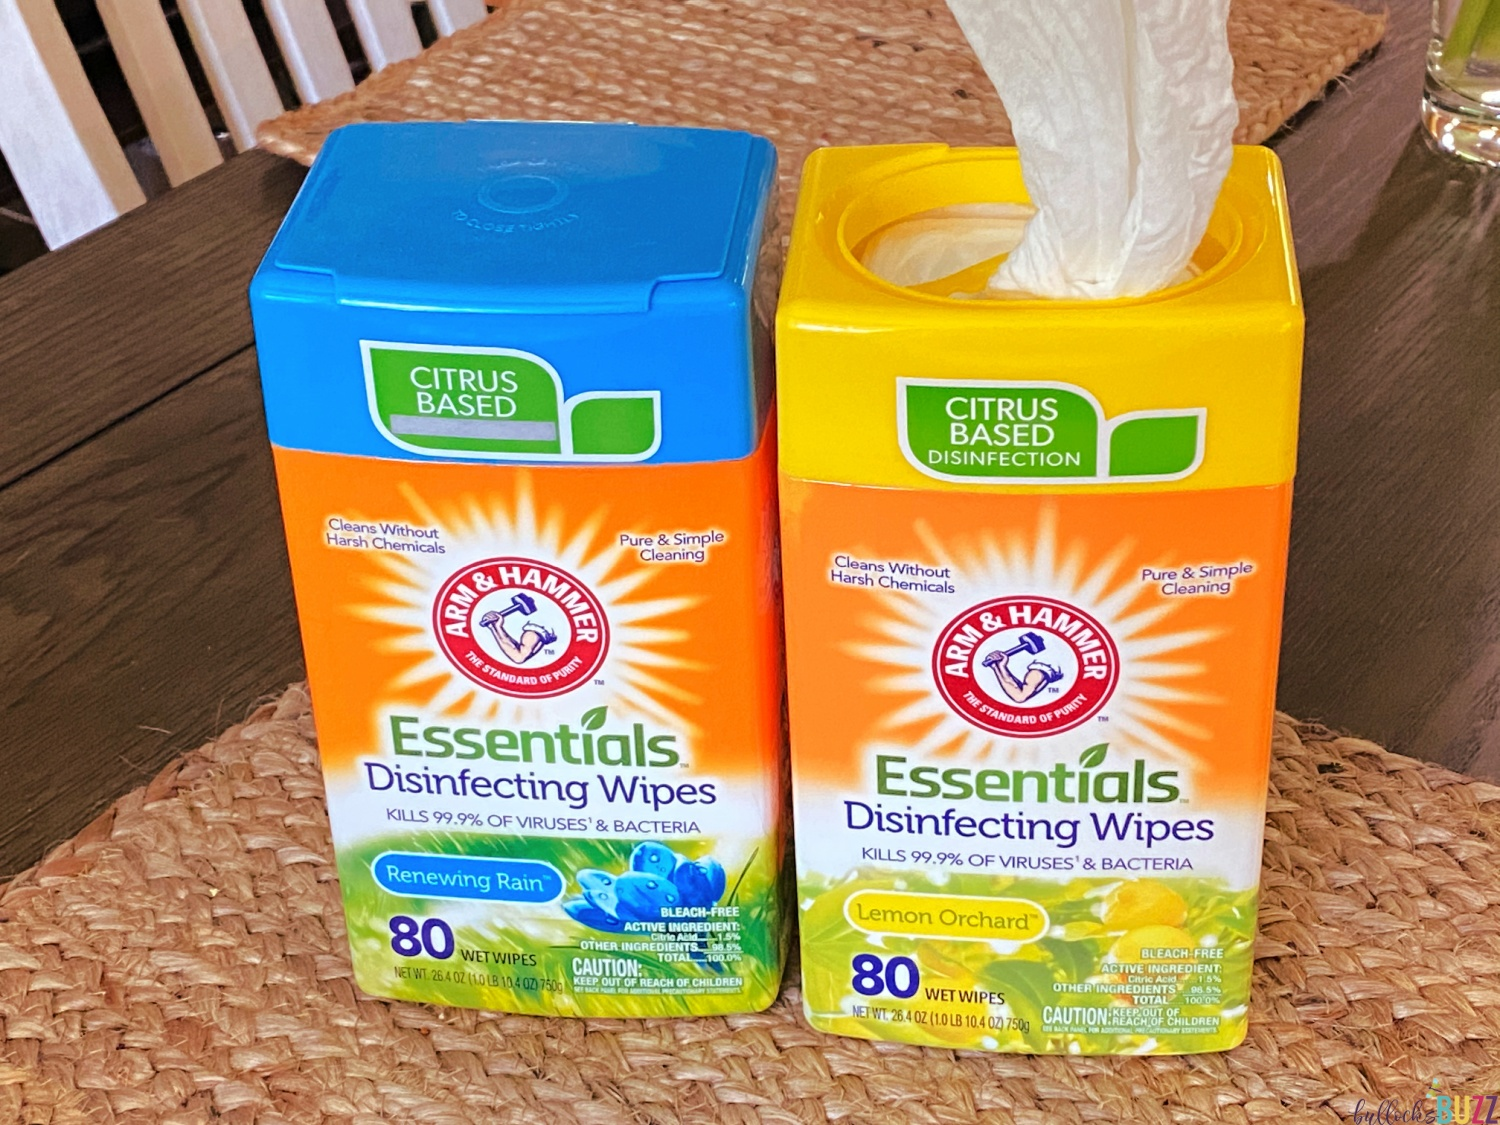 Arm and Hammer Essentials Disinfecting Wipes containers open